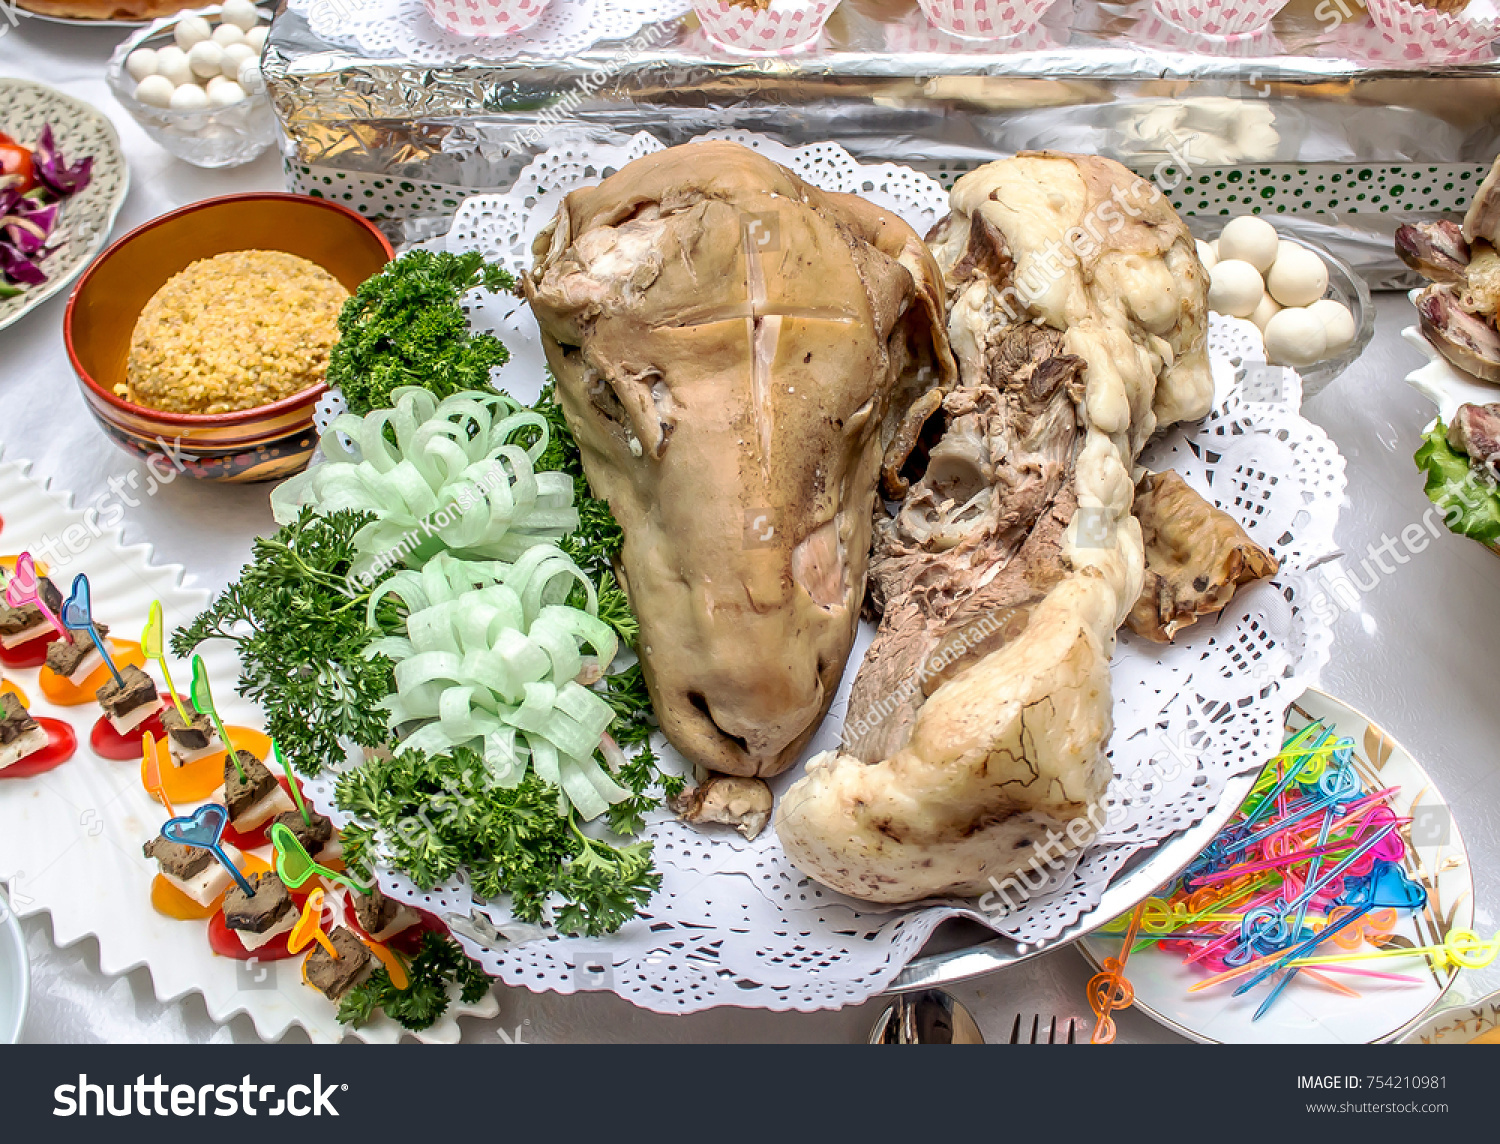 Kazakh National Foodboiled Lamb Head Stock Photo 754210981 ... for Lamb Head Food  174mzq